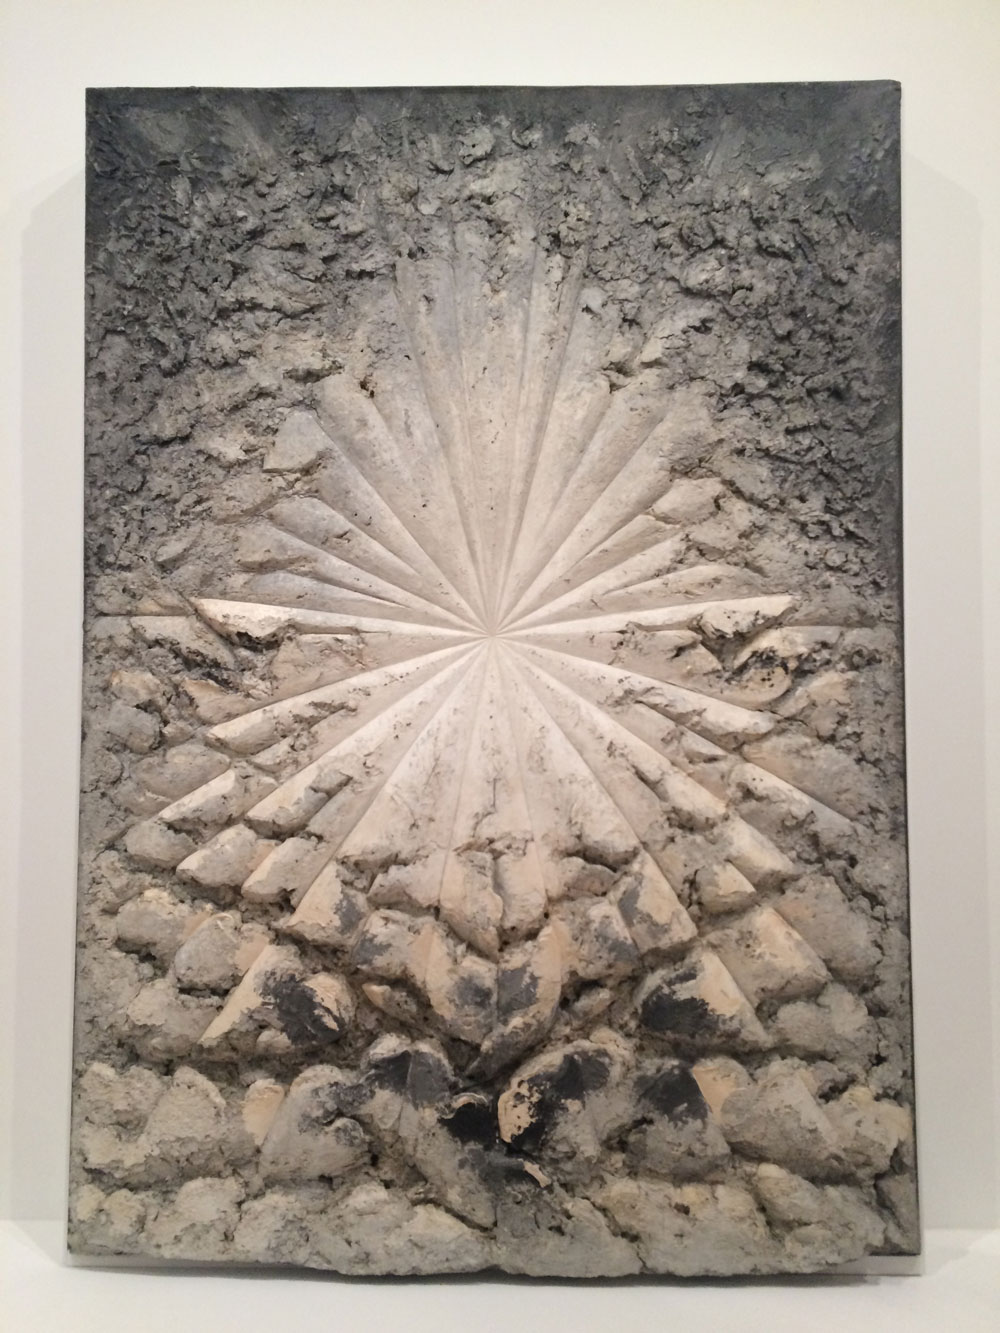 Jay Defeo from the Whitney collection.  It's a painting.  I'll leave my comments at that and let you drool.